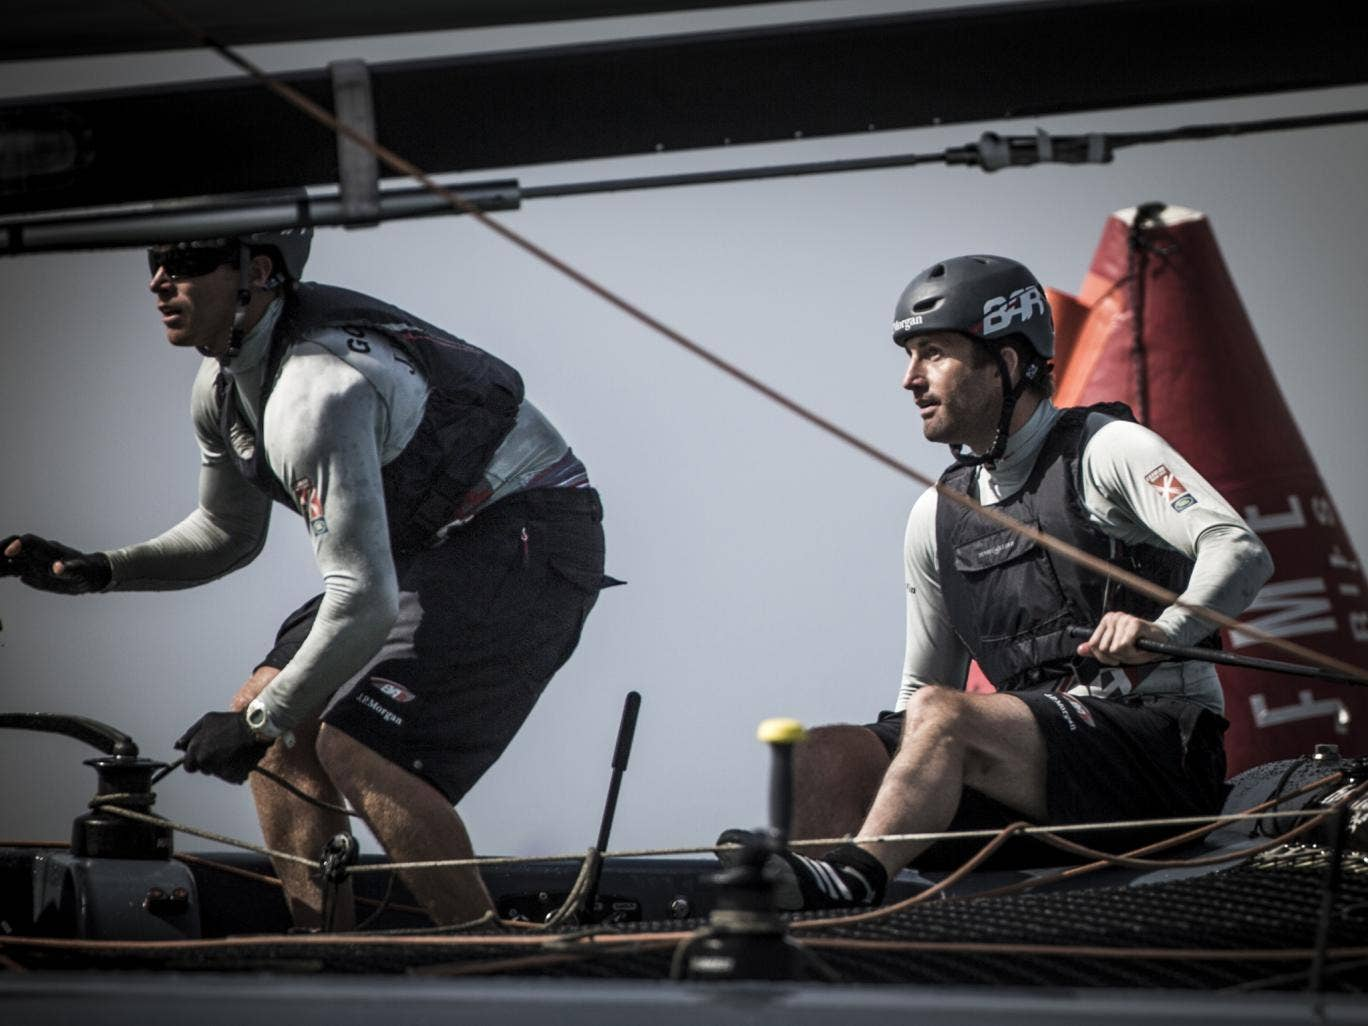 Tension on board as Ben Ainslie (right) and Paul Goodison suffer a disappointing final day of the Extreme Sailing Series in Muscat, Oman, on the 40-foot catamaran J.P.Morgan/BAR